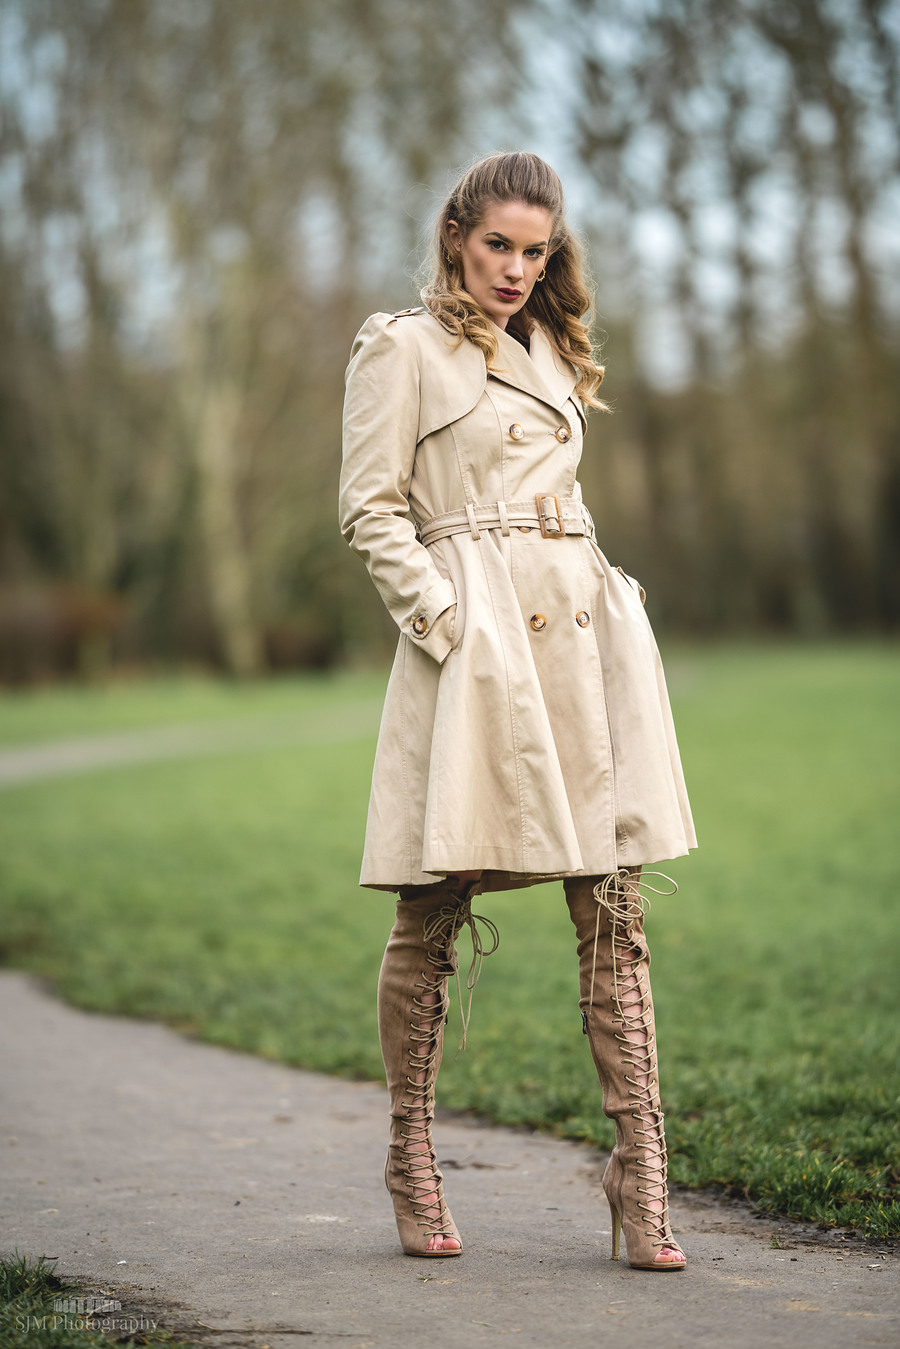 Countryside fashion in my beautiful and historic town